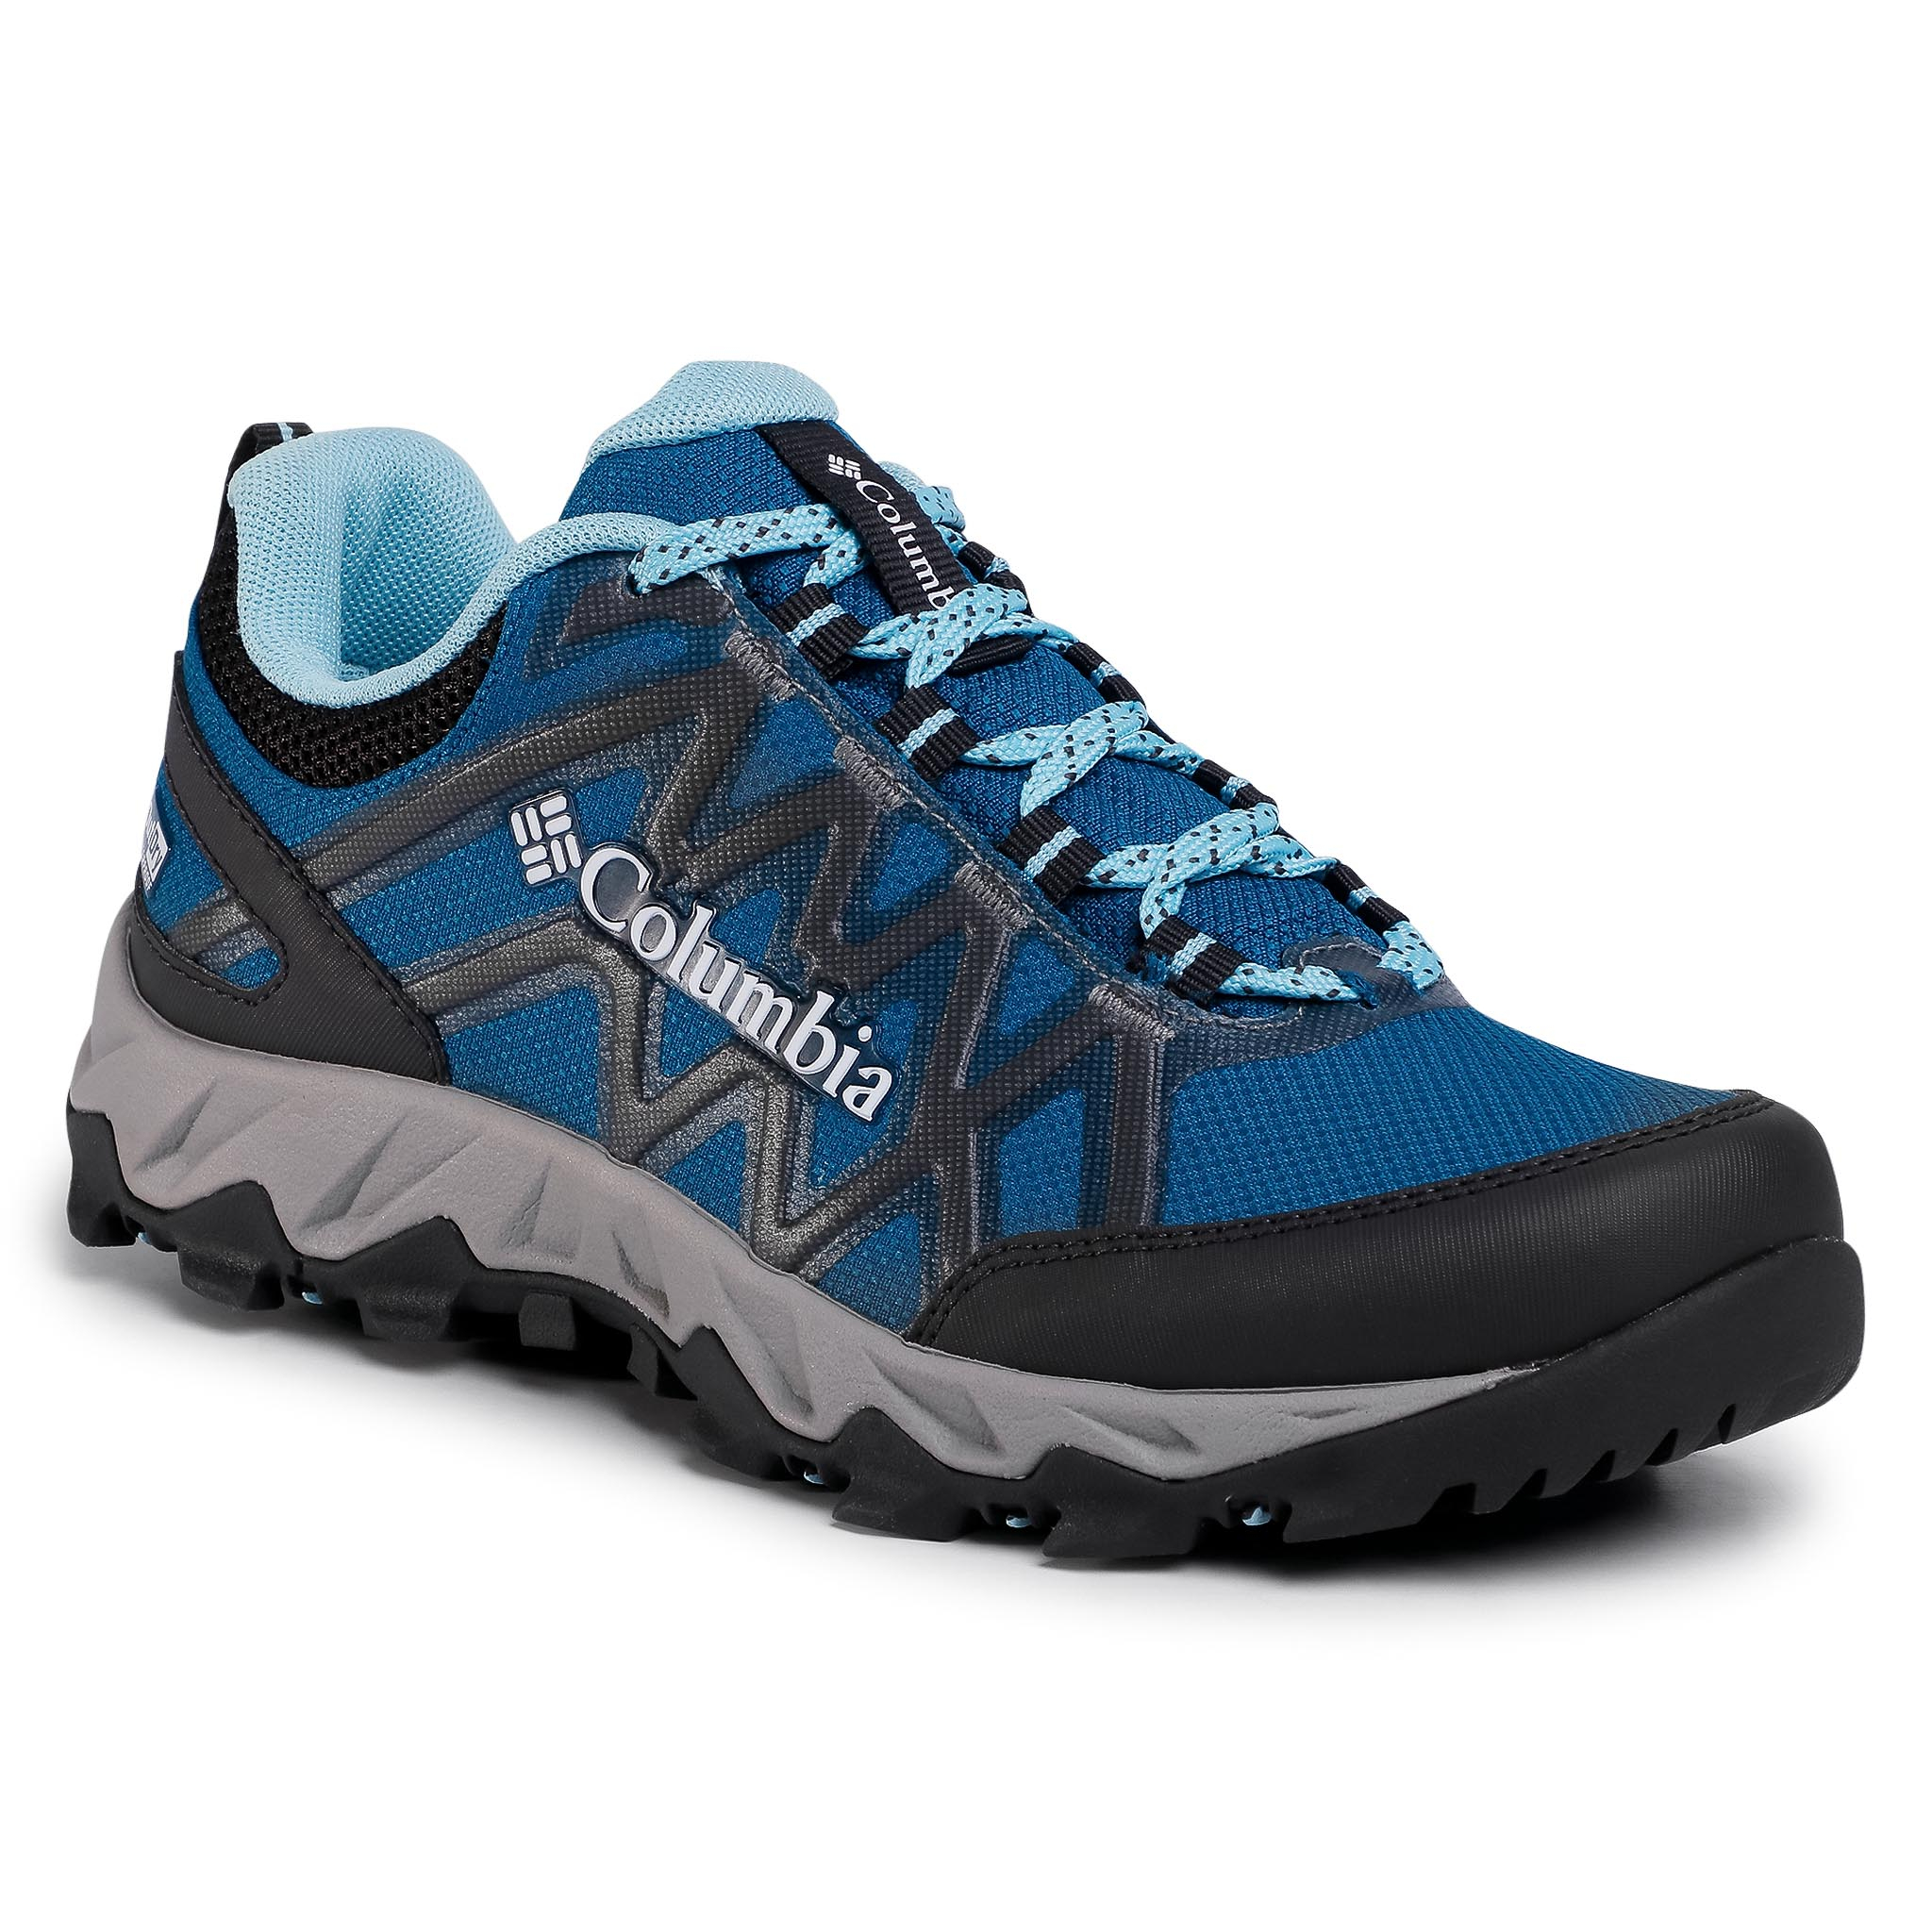 Trekkings Columbia - Peakfreak X2 Outdry Bl0829 Lagoon/Blue Oasis 457 imagine epantofi.ro 2021